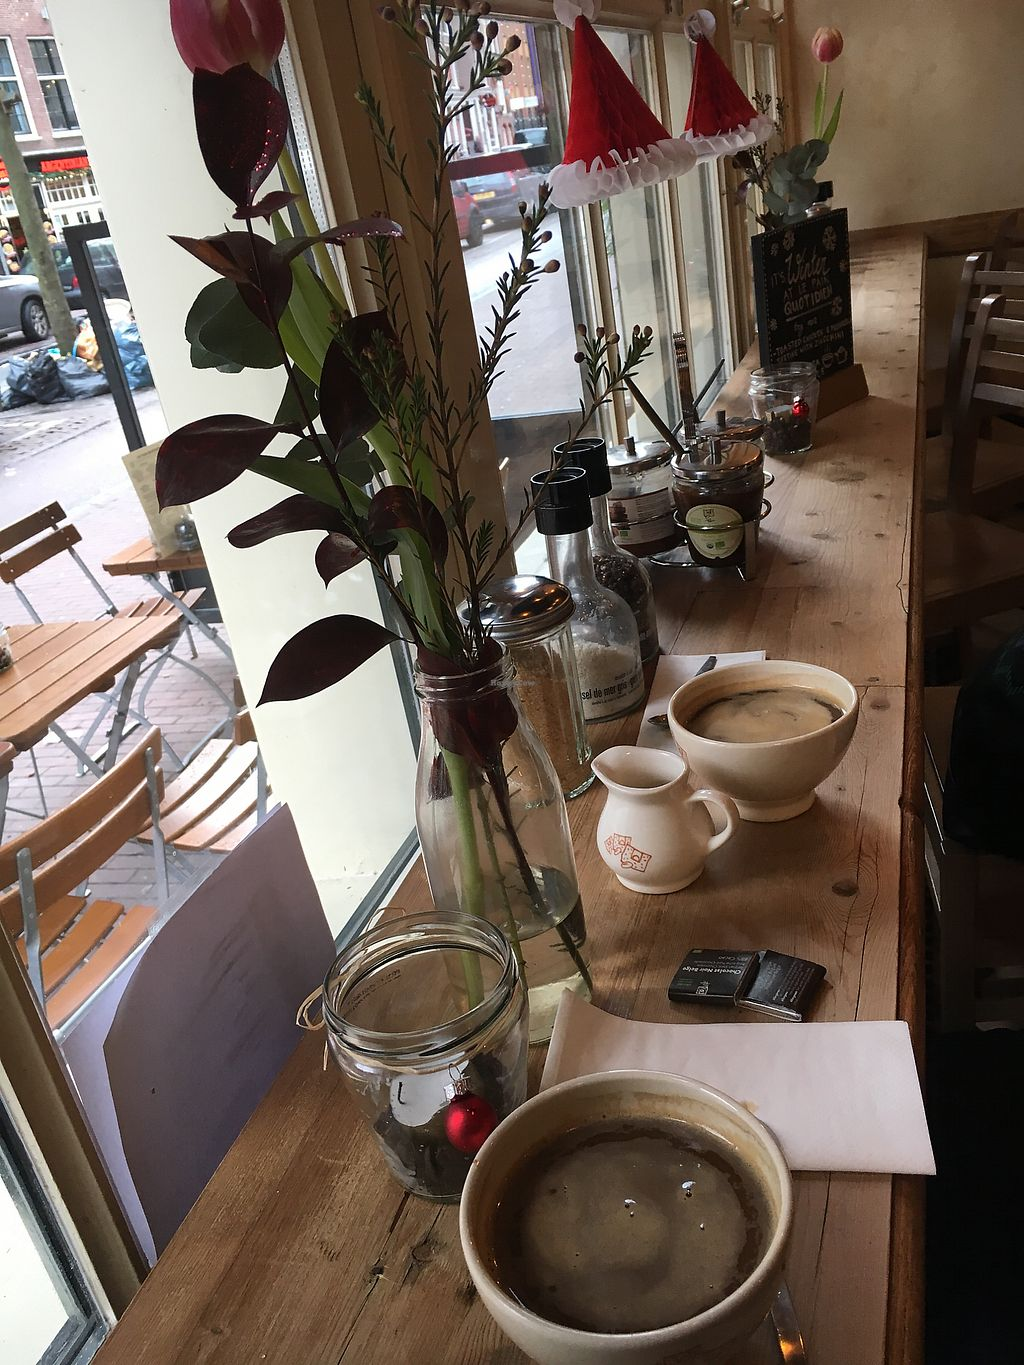 "Photo of Le Pain Quotidien - Nieuwezijds  by <a href=""/members/profile/hack_man"">hack_man</a> <br/>Window seat area  <br/> January 2, 2018  - <a href='/contact/abuse/image/84213/341987'>Report</a>"